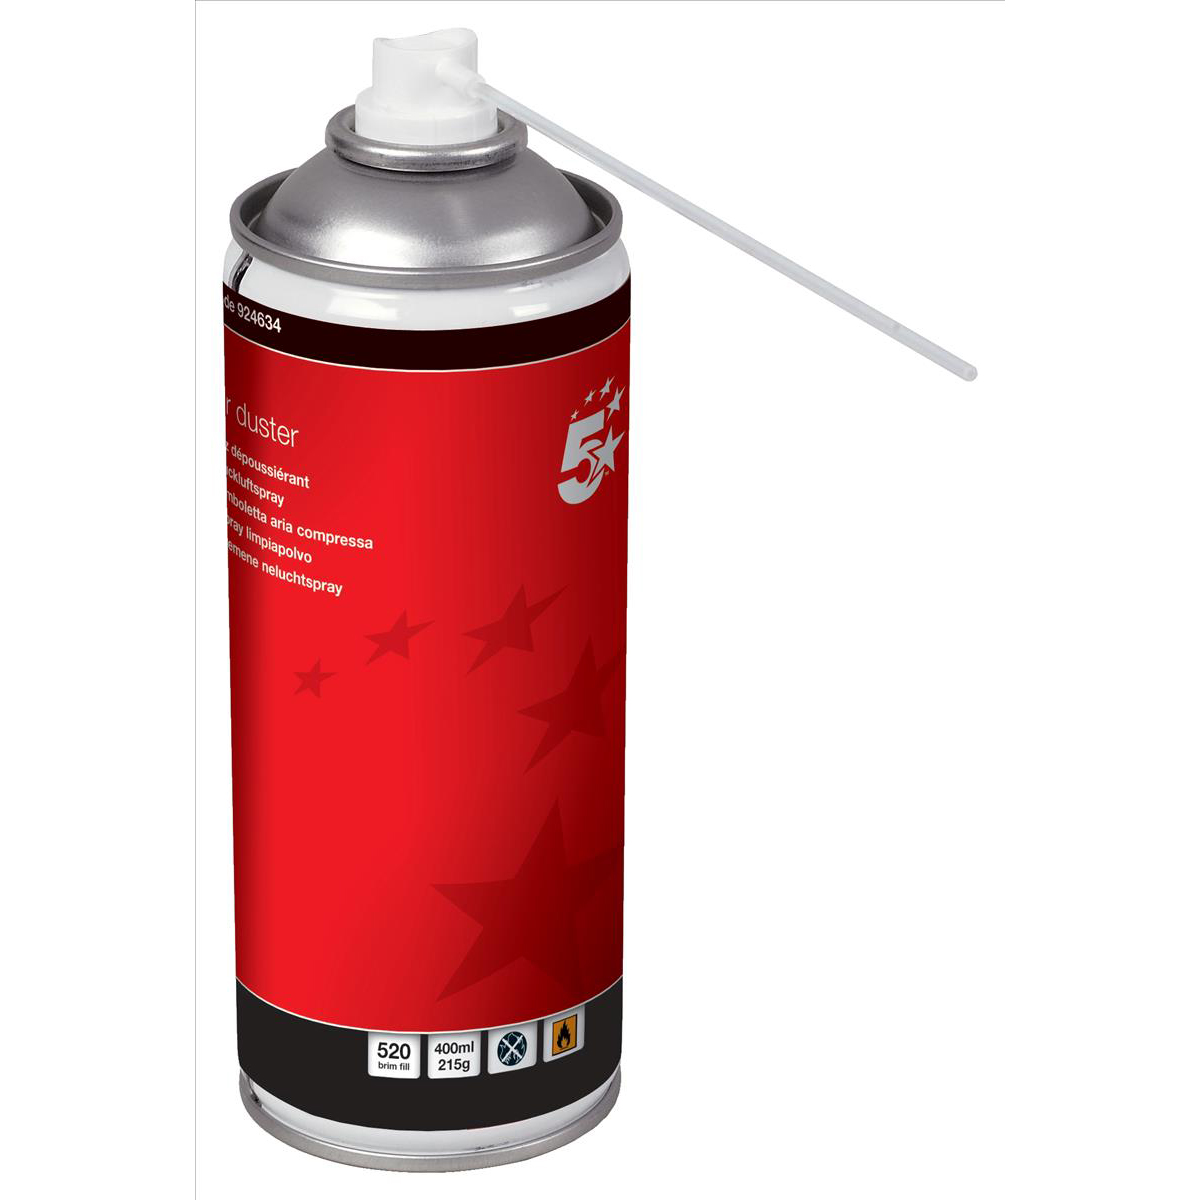 5 Star Office Spray Duster Can HFC Free Compressed Gas Flammable 400ml Pack 4